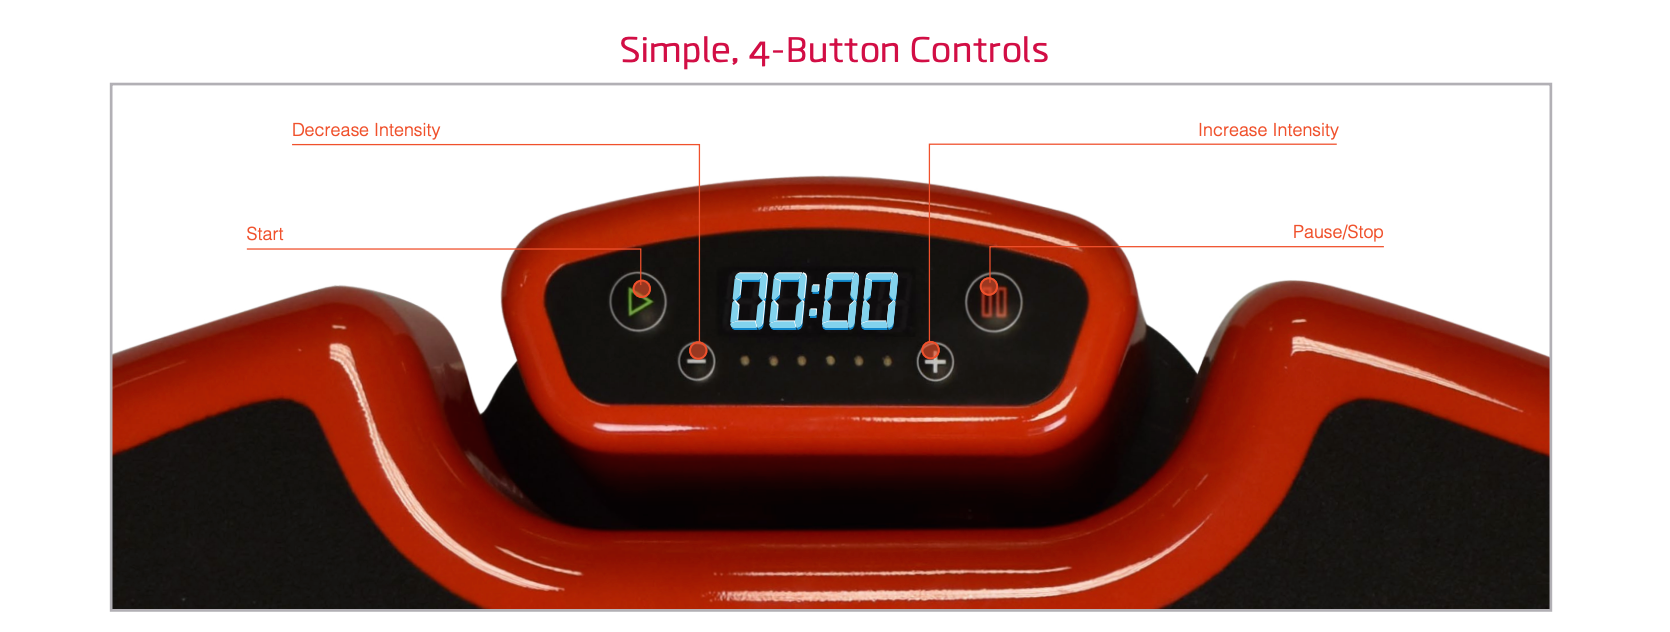 Power Plate MOVE button image